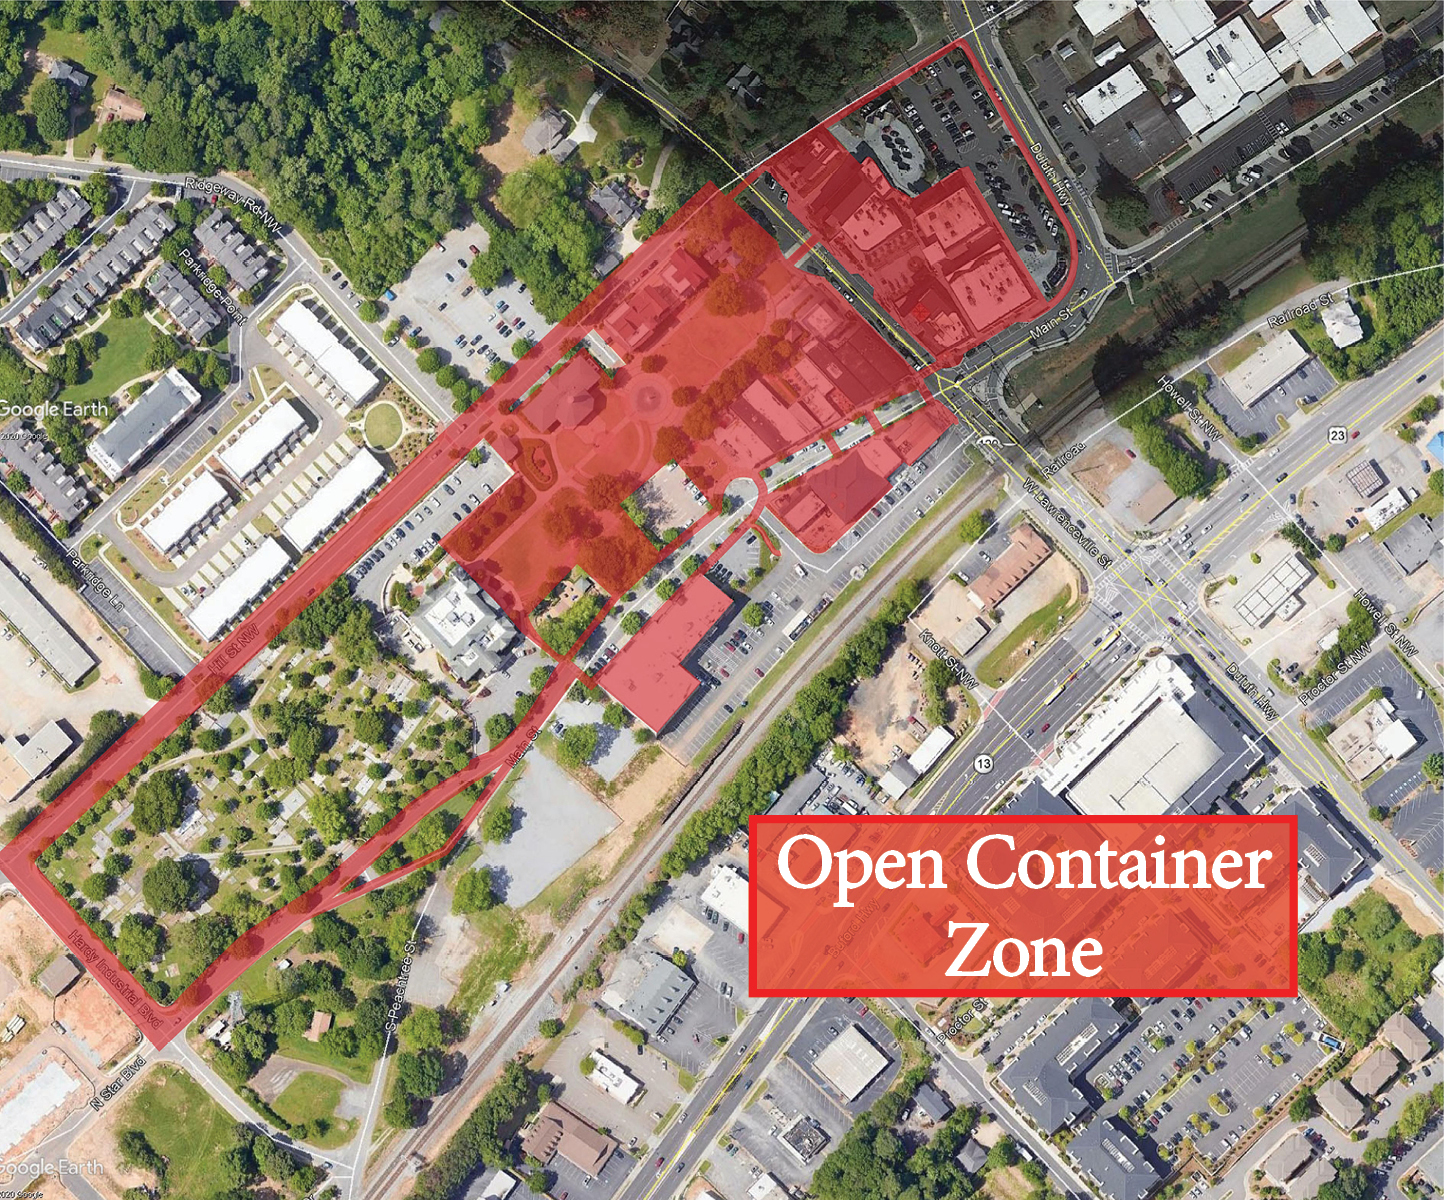 Map of Downtown Duluth open container zone.